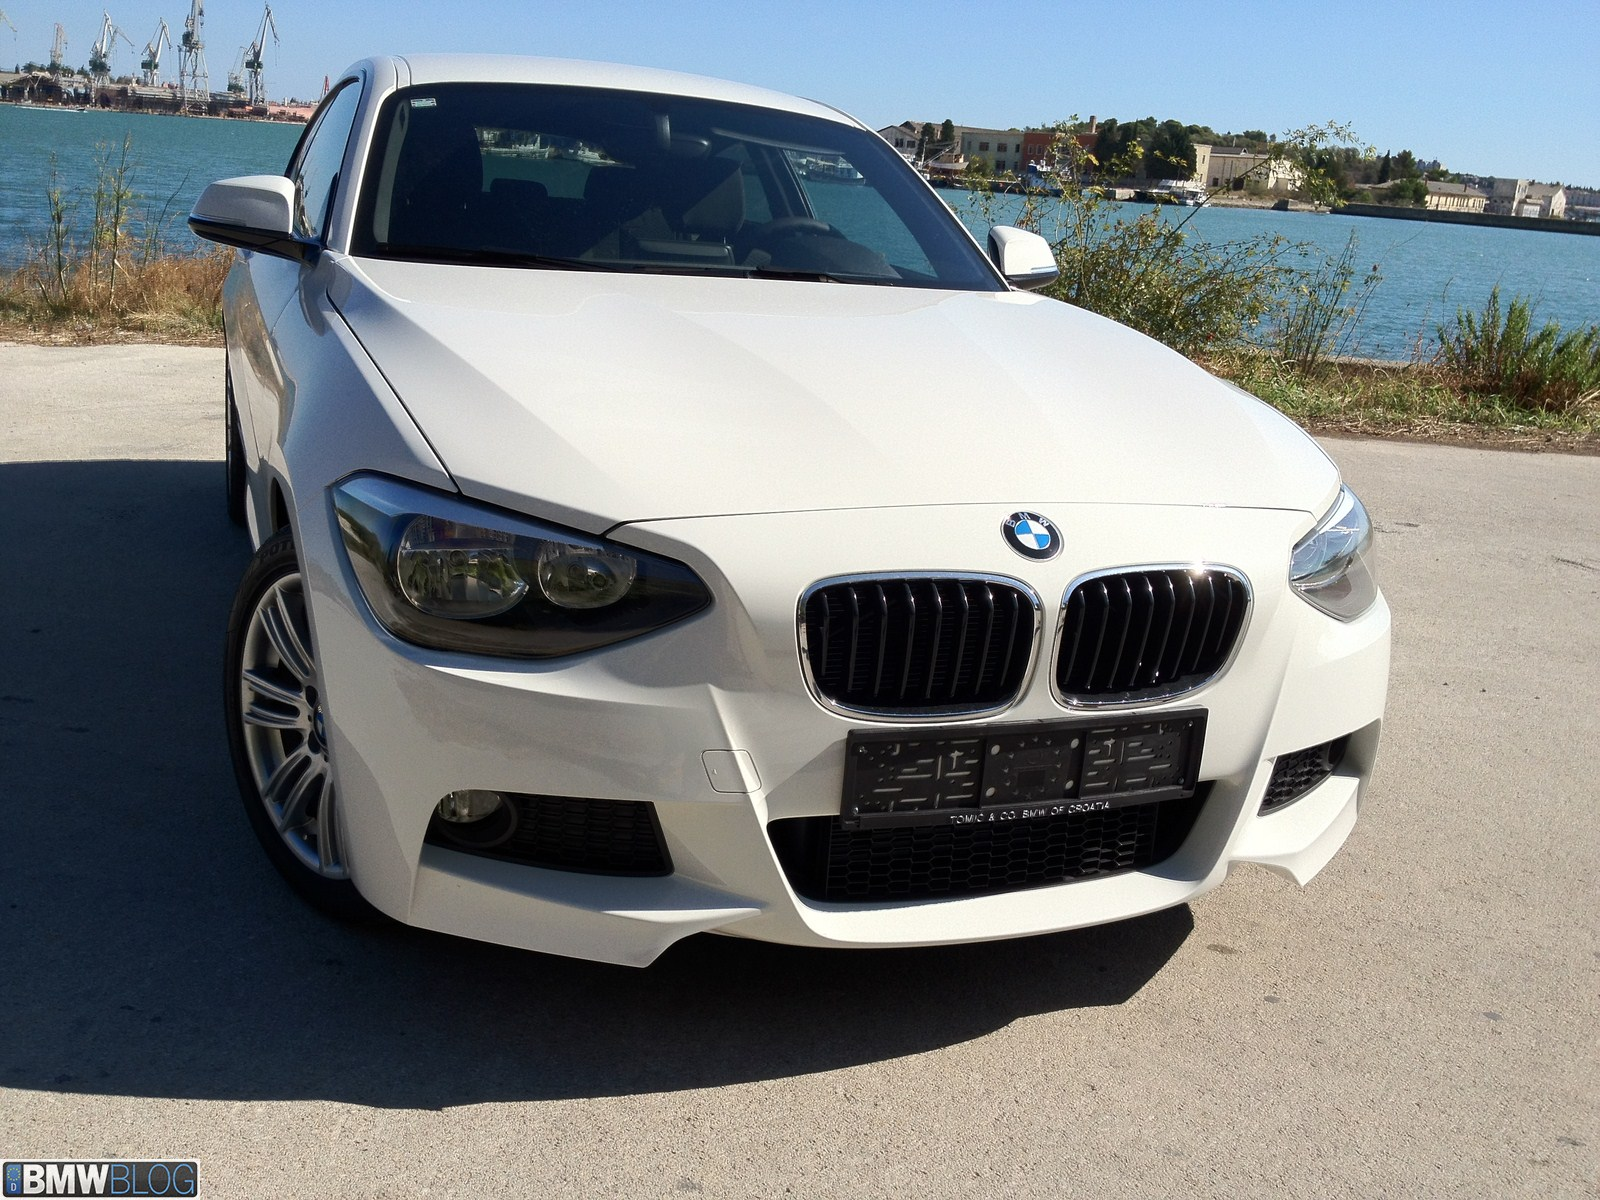 Photo Gallery F21 Bmw 1 Series With M Sport Package